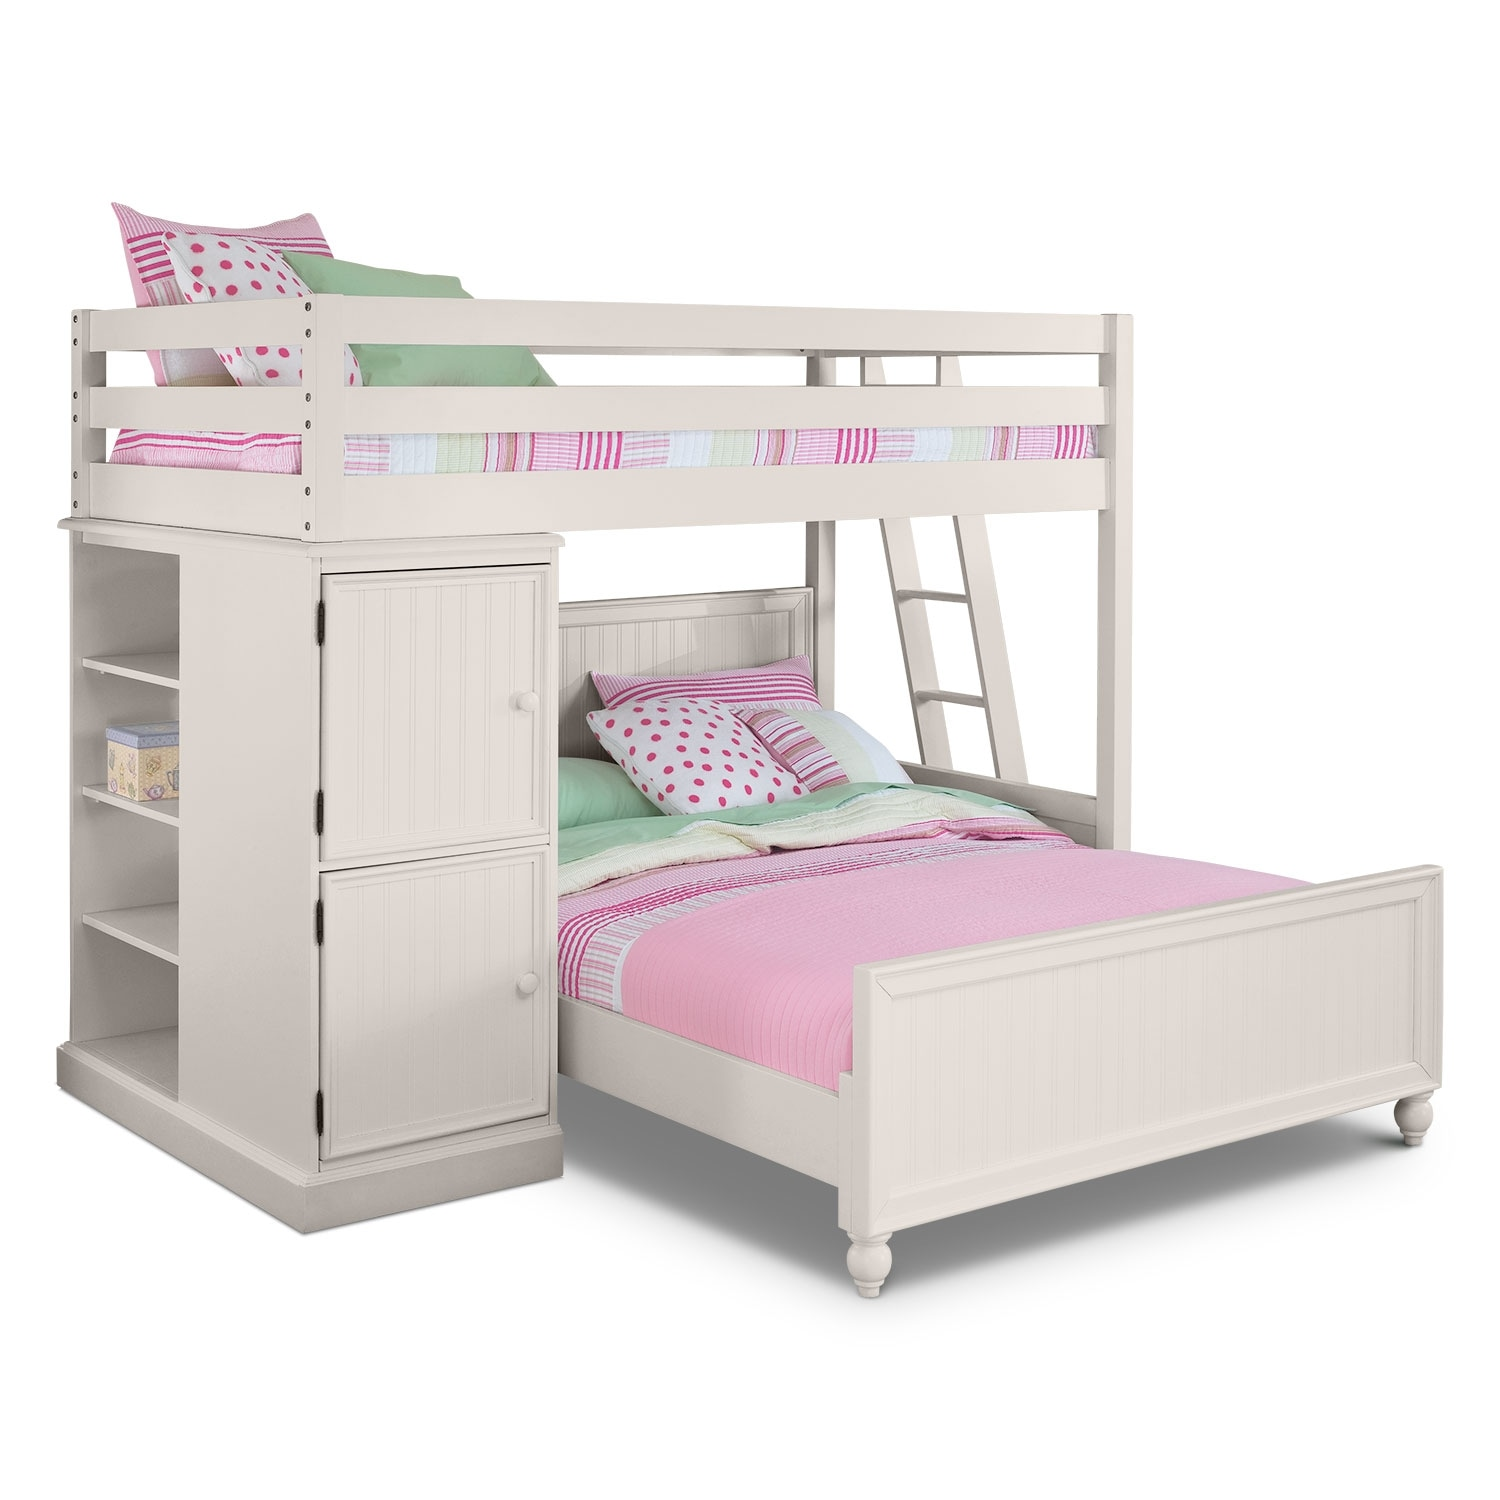 Dining Room Furniture Deals Colorworks Loft Bed With Full Bed White American